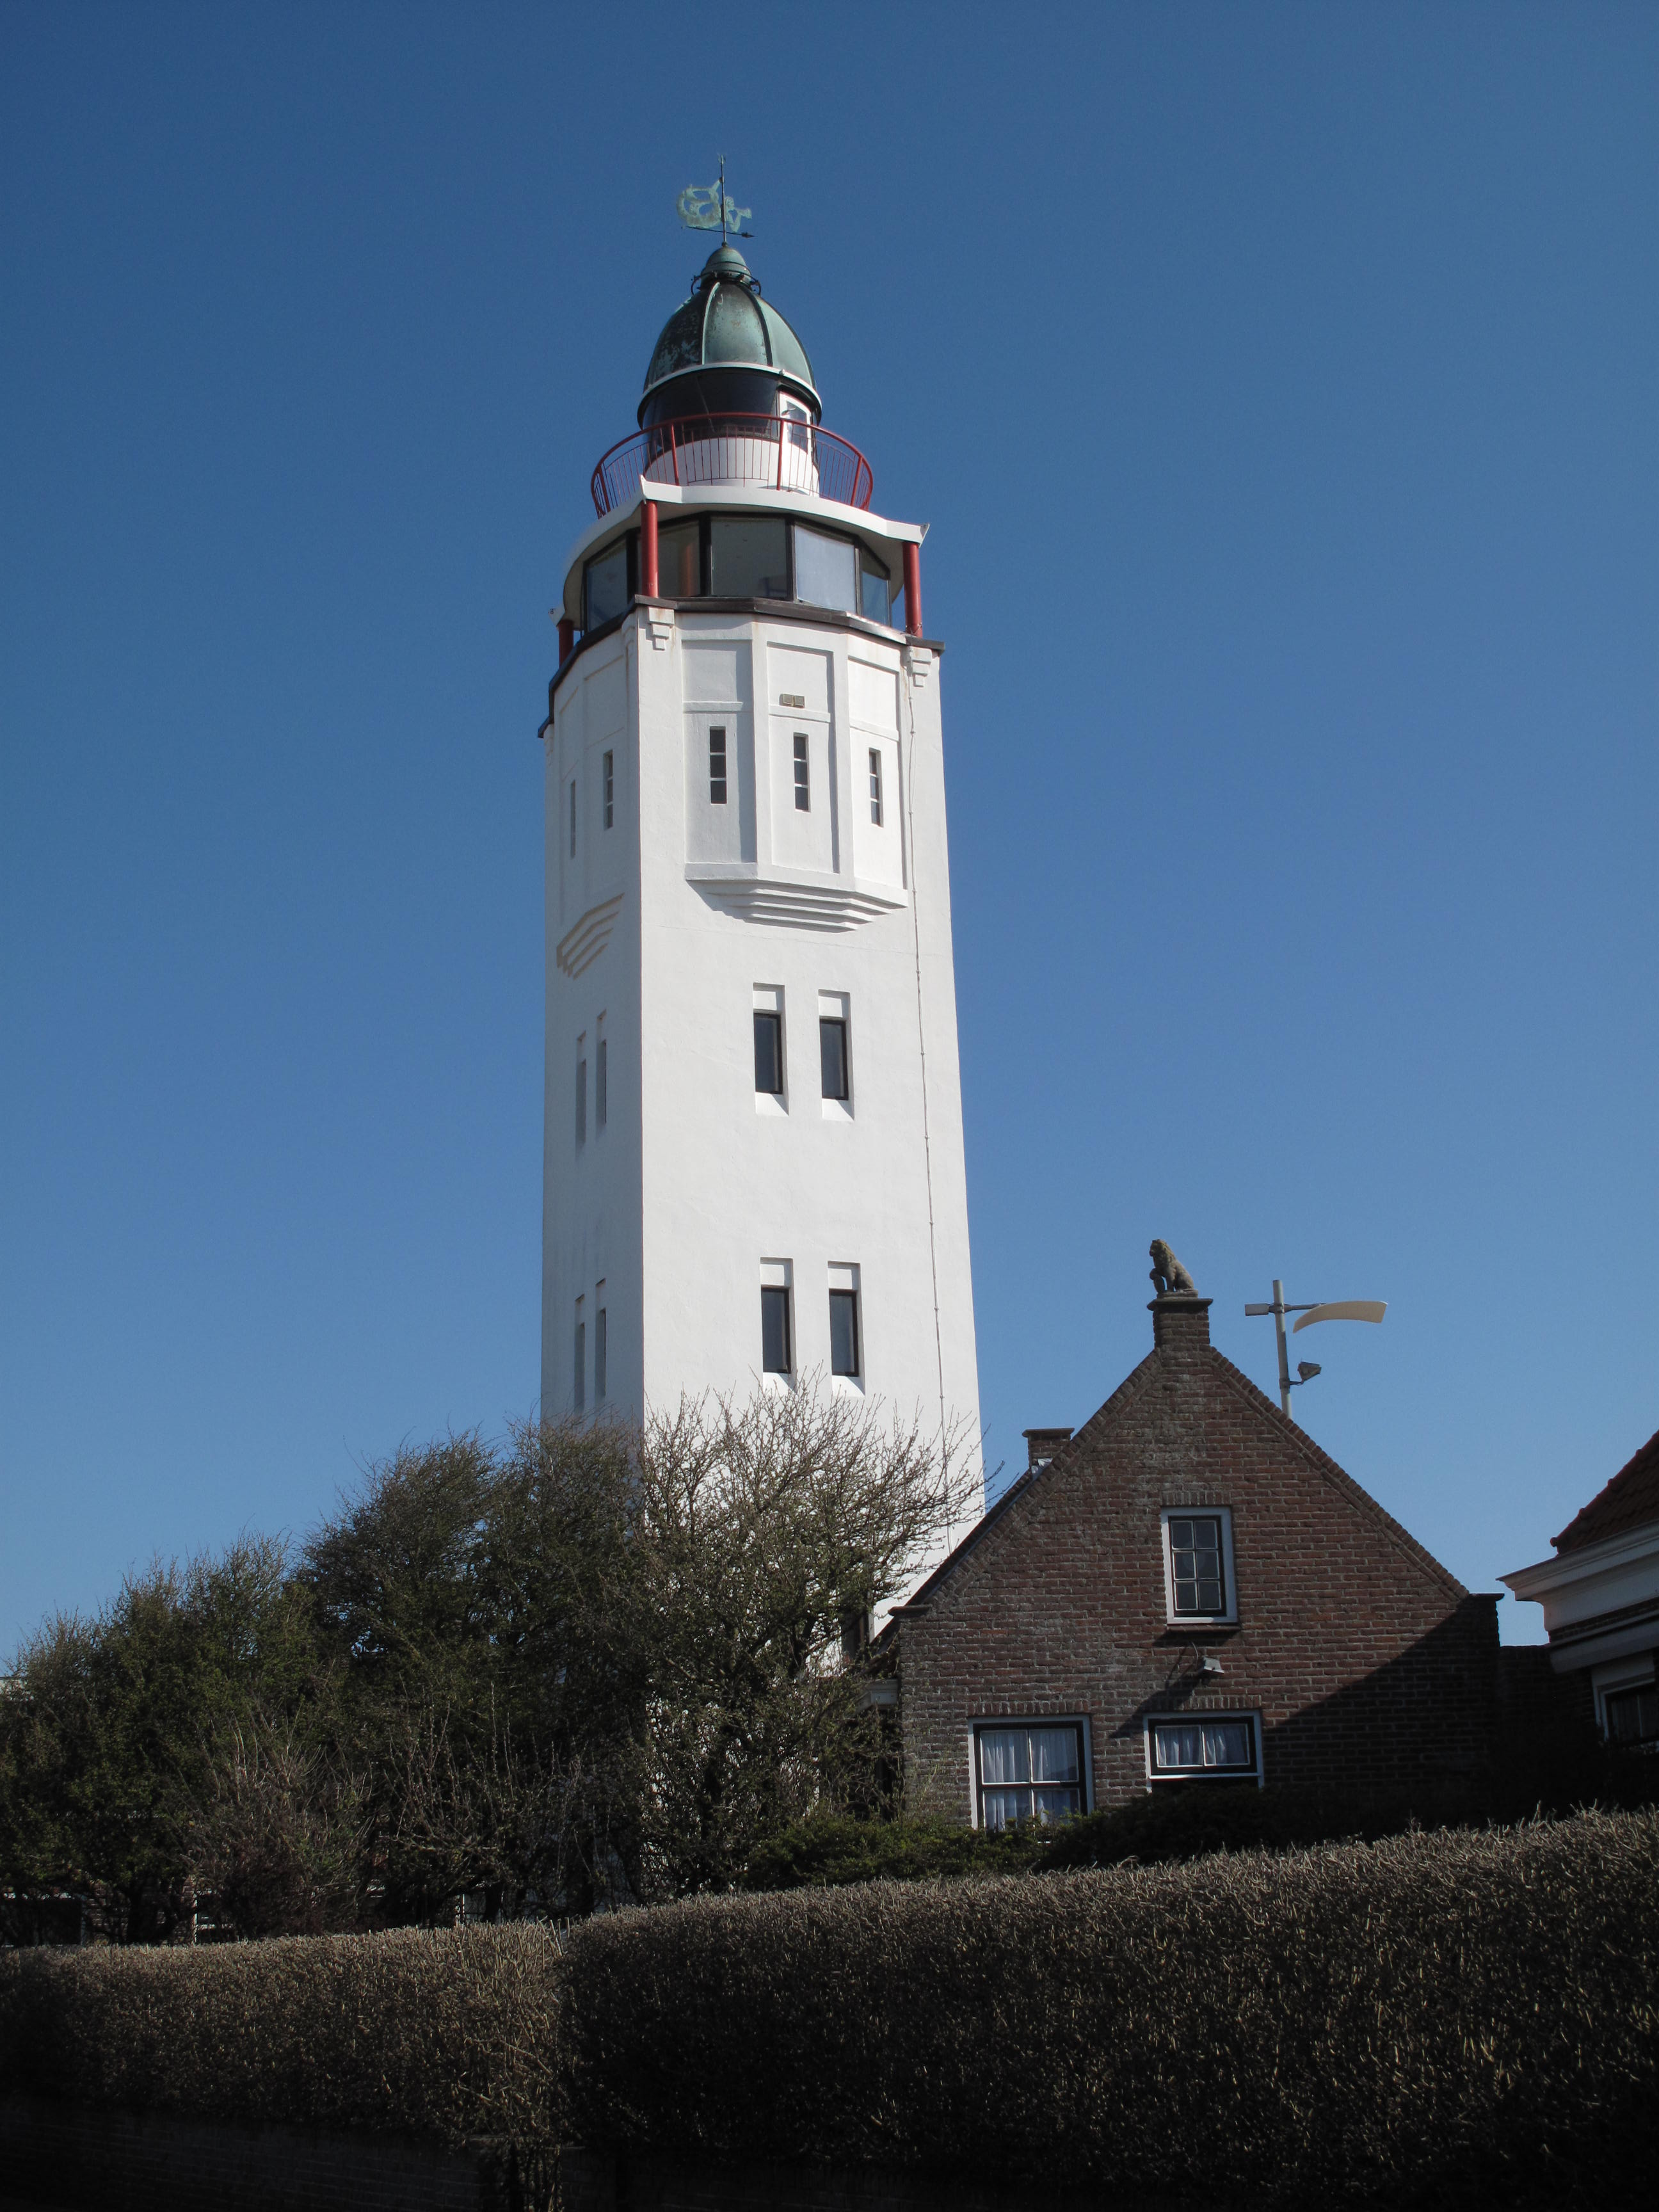 Harlingen,Netherlands